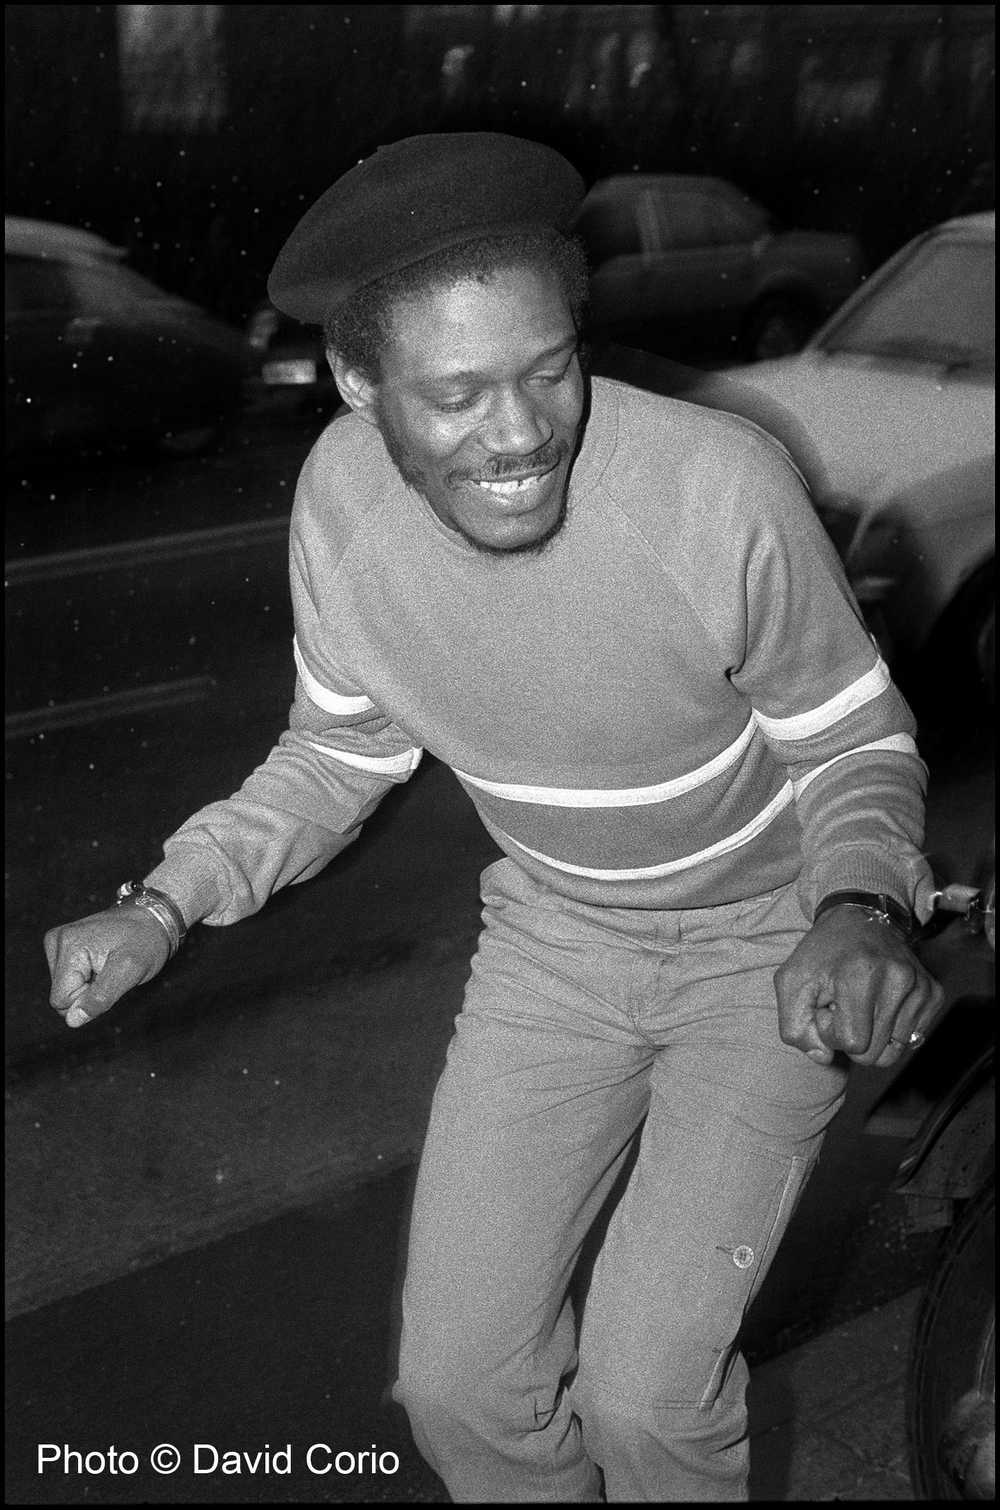 Horace Andy skanking in the snow outside Rough Trade Records, Kings Cross, London, UK 15 March 1985 by David Corio